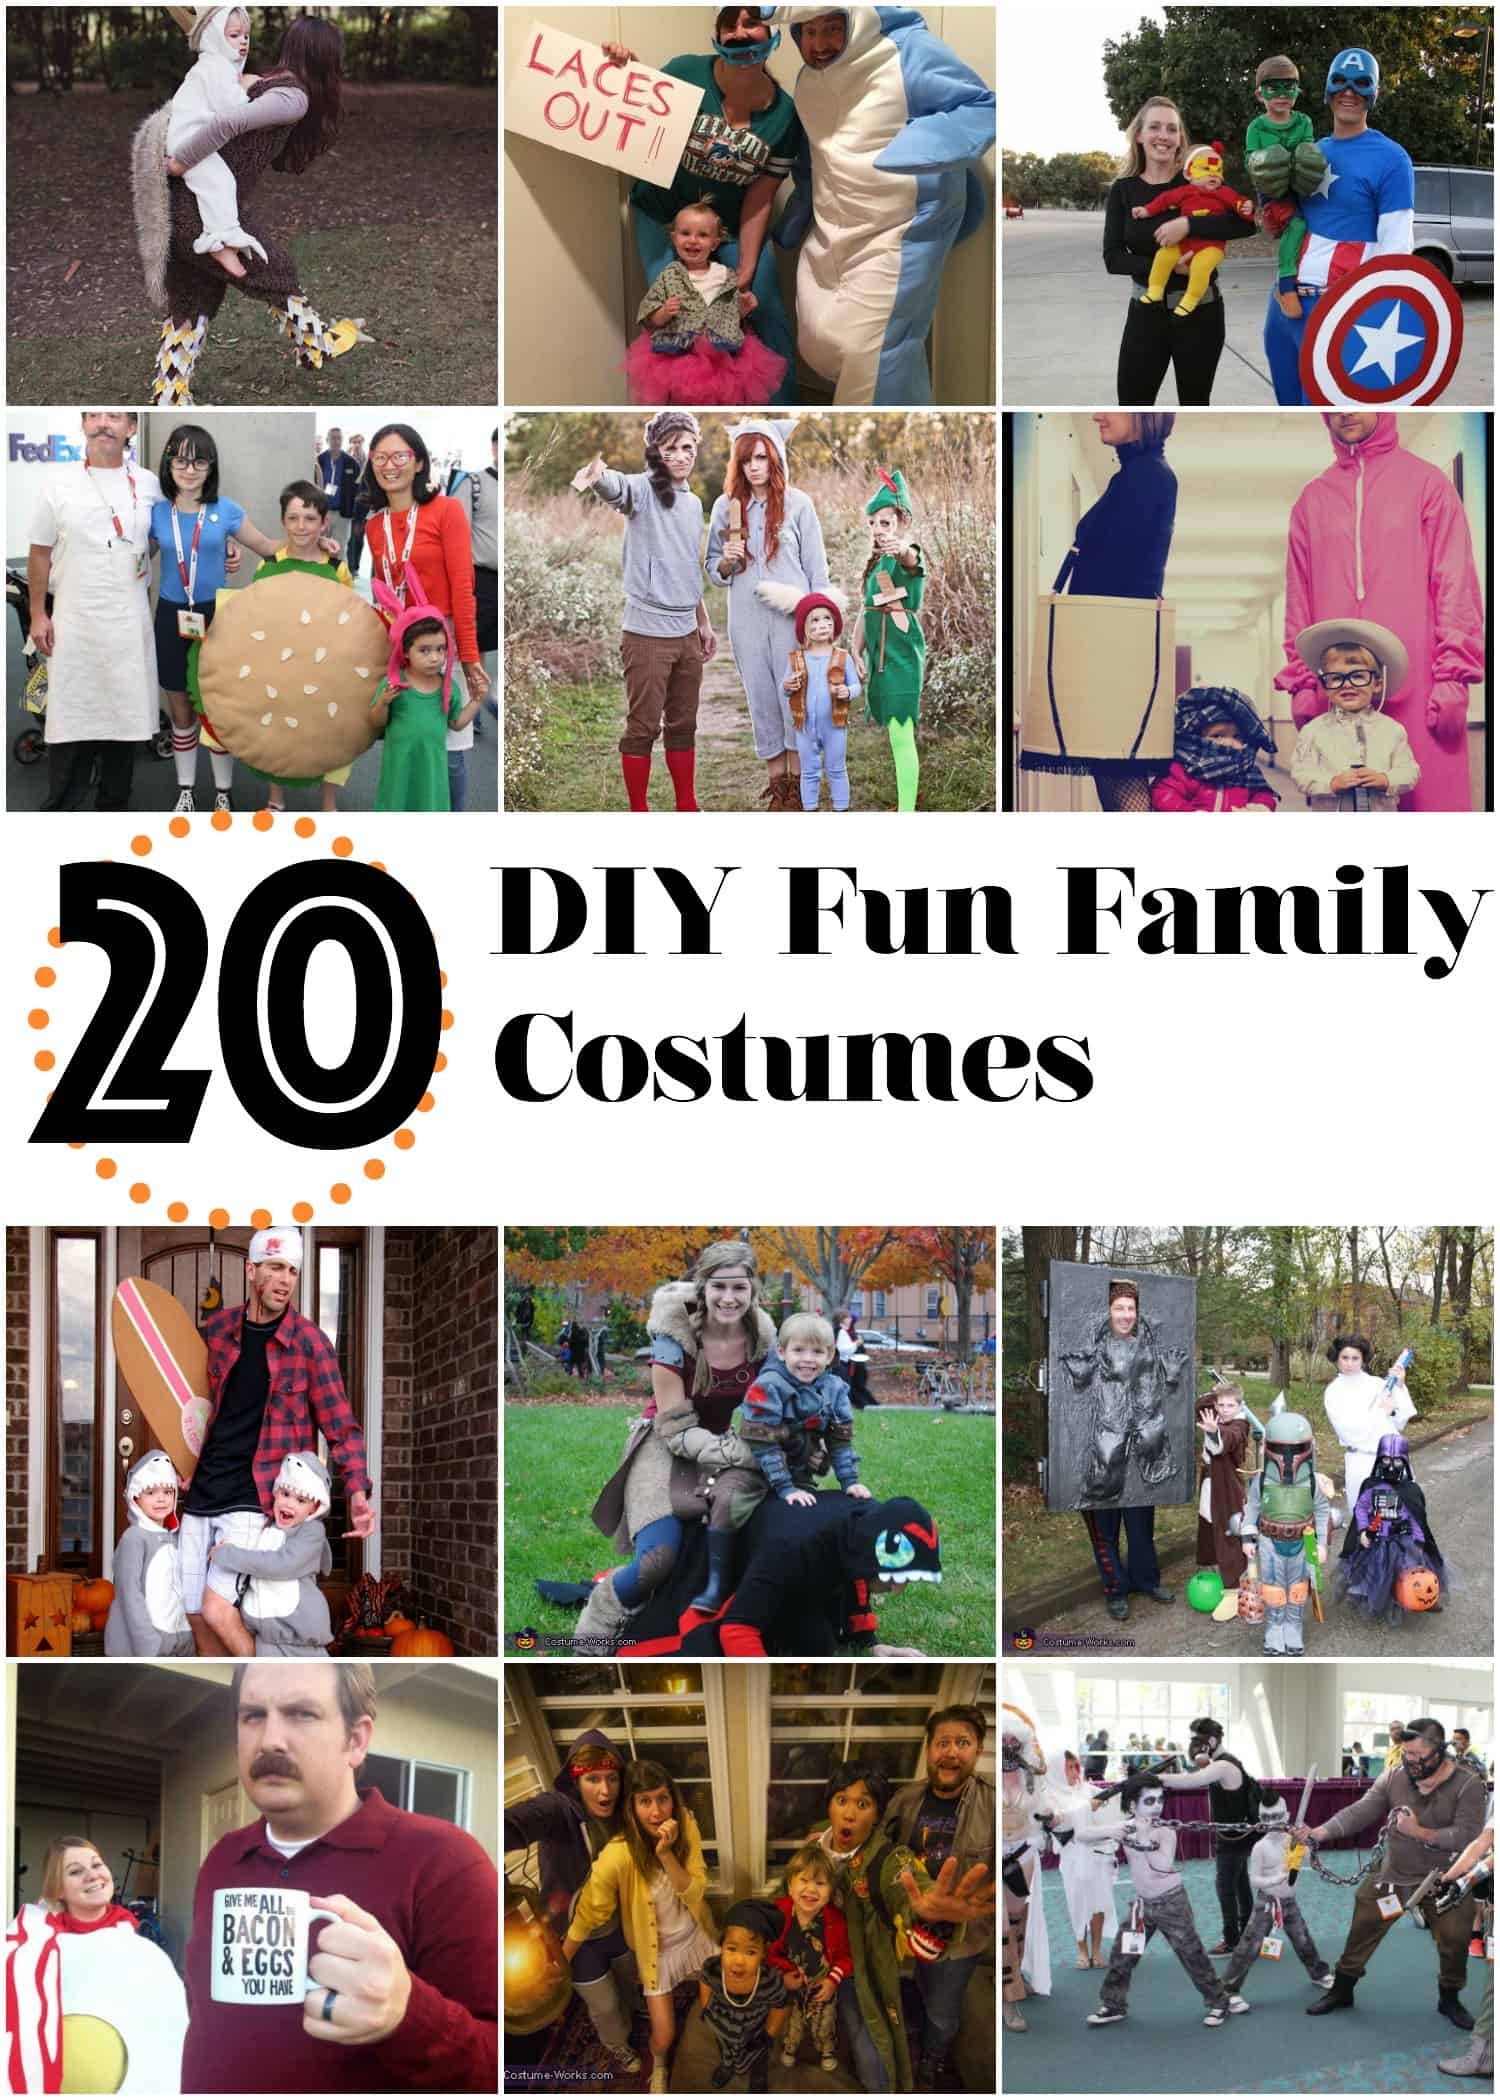 Diy Family Halloween Costumes.20 Diy Fun Family Costumes The Cow Country Housewife